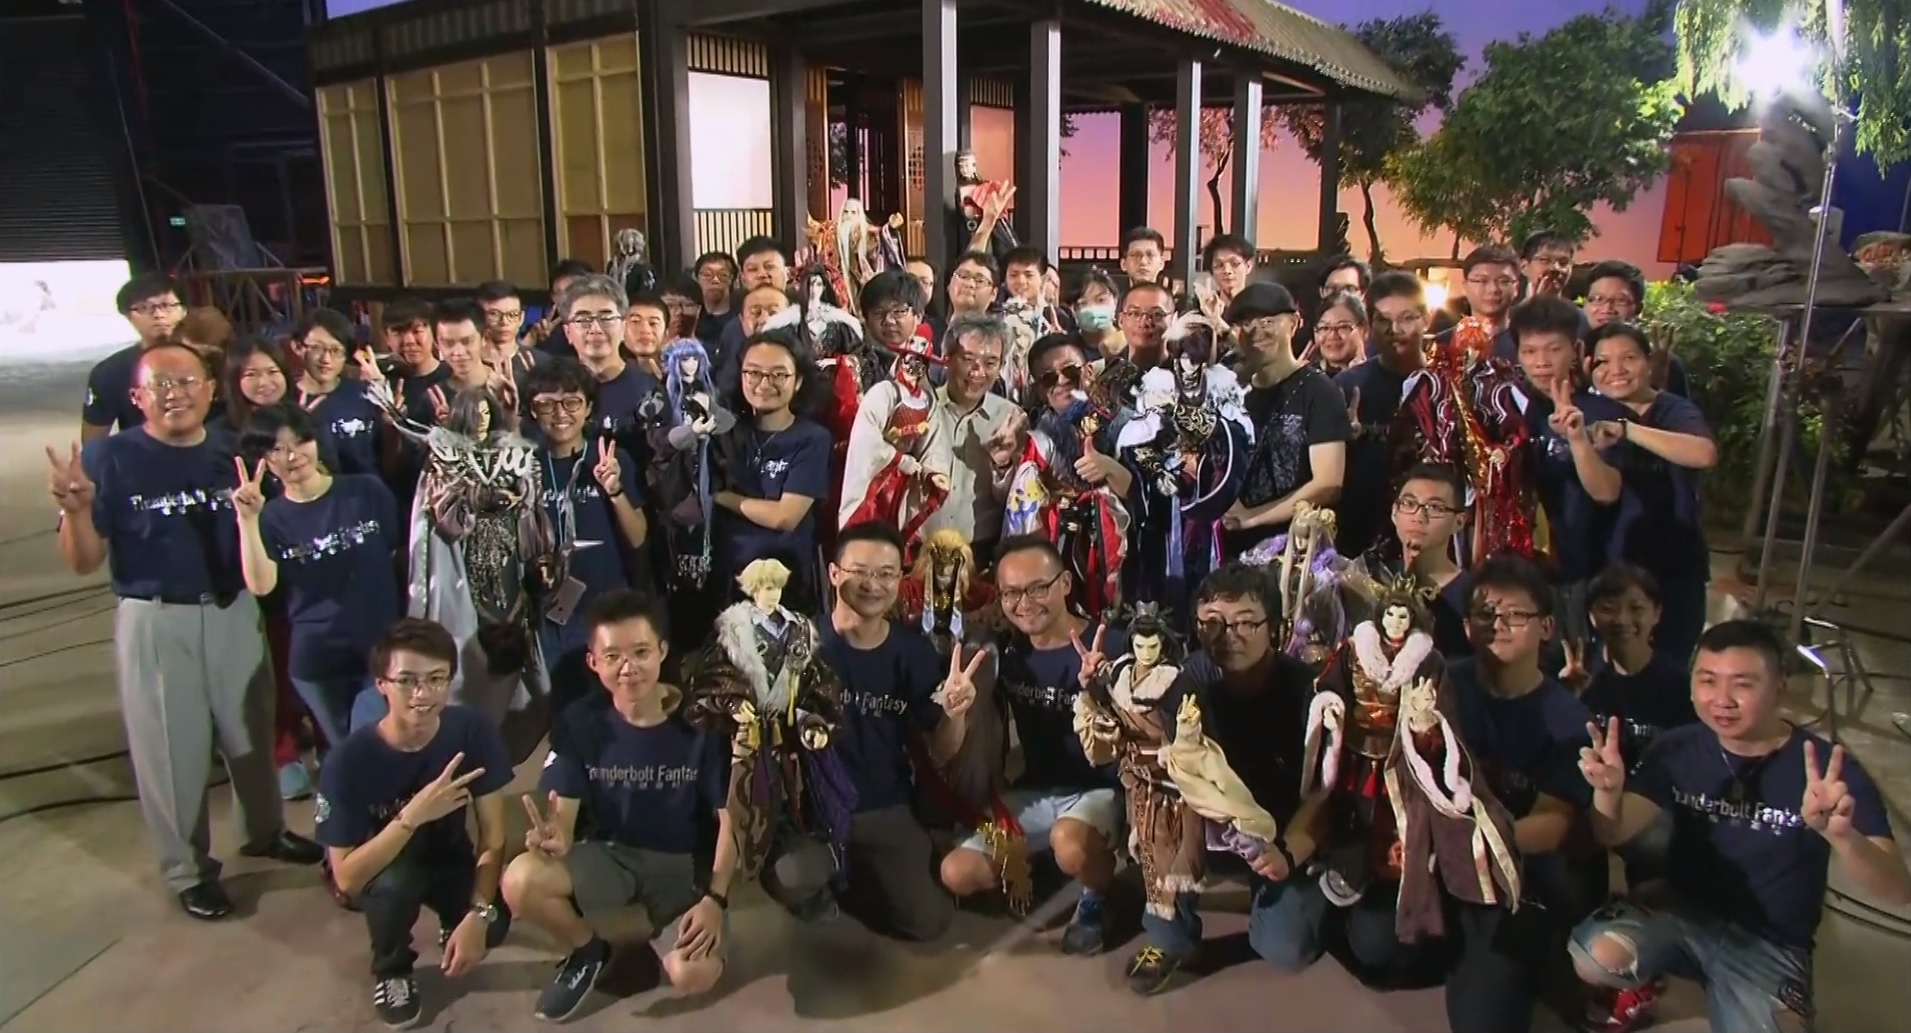 The cast and puppets of Thunderbolt Fantasy arranged bleacher style in a group photo at the wrap of show.